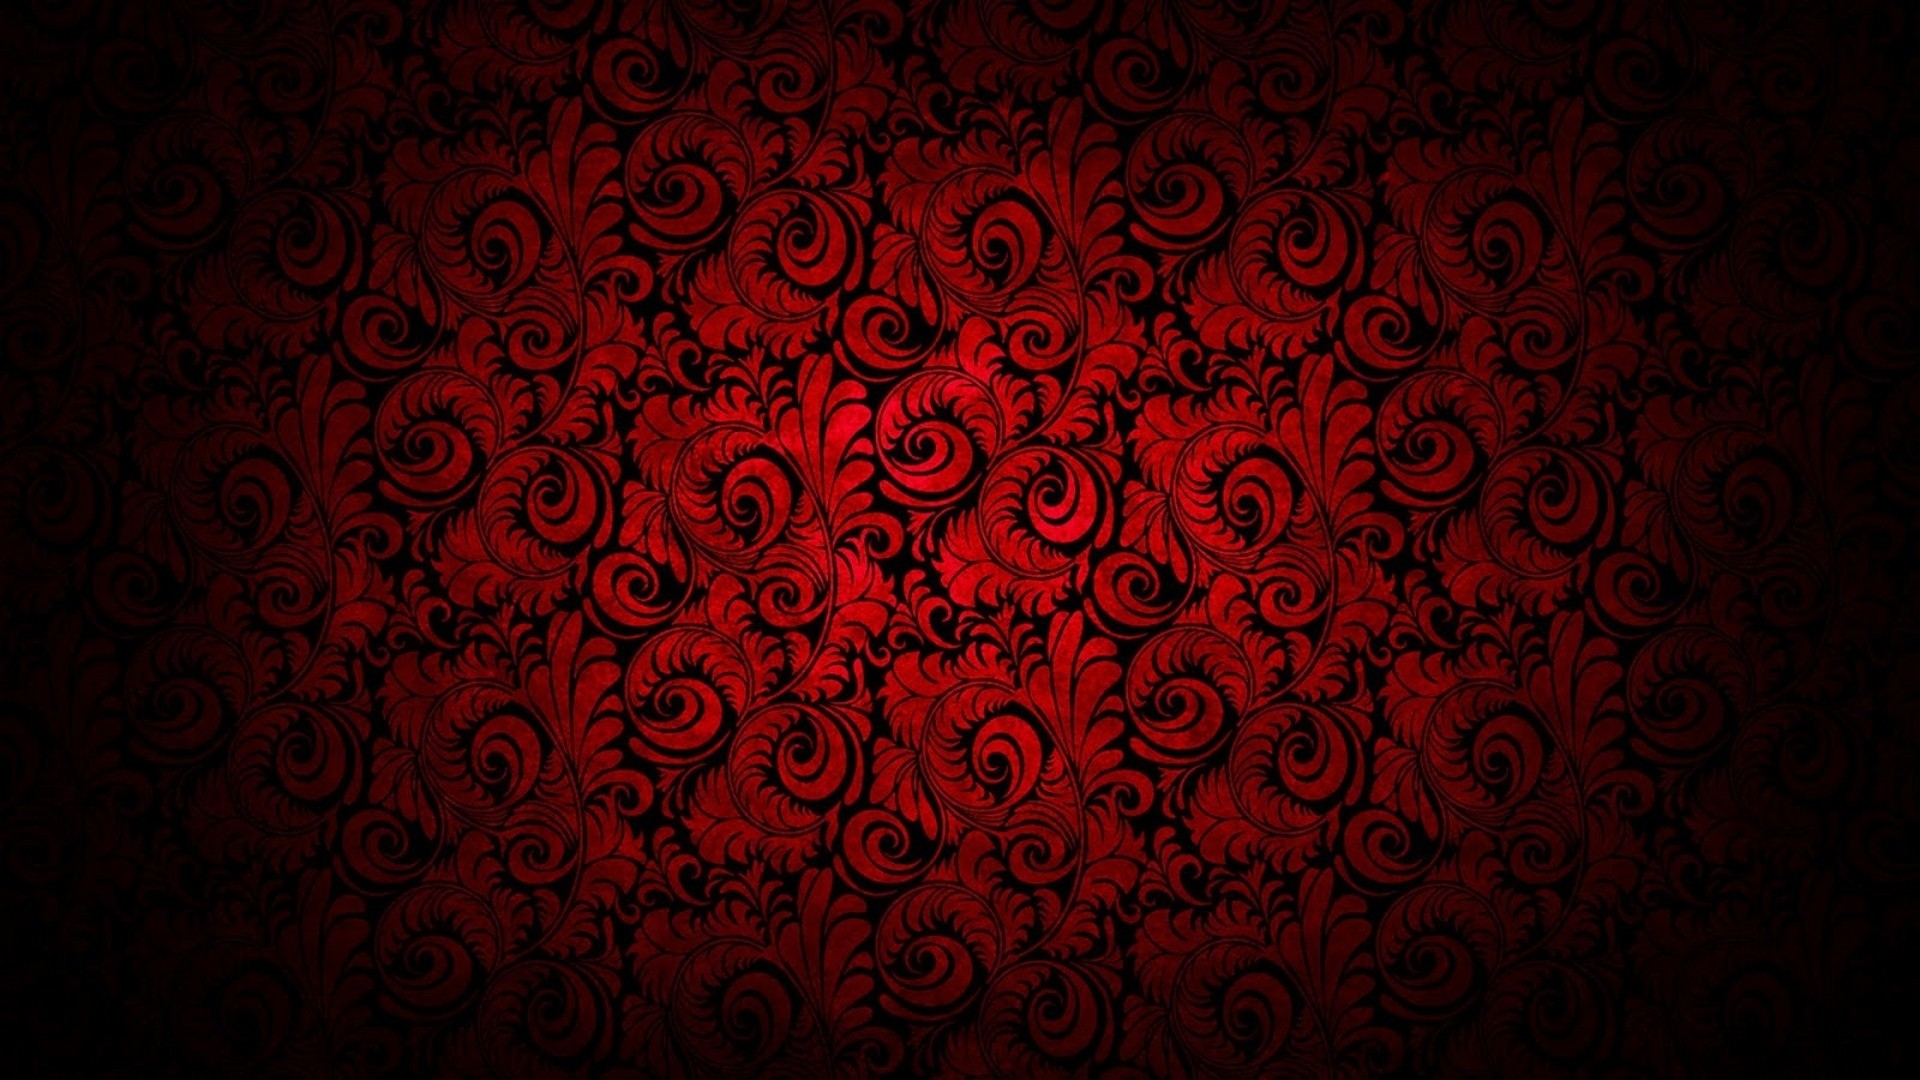 1920x1080 Wallpaper Red Black Abstract